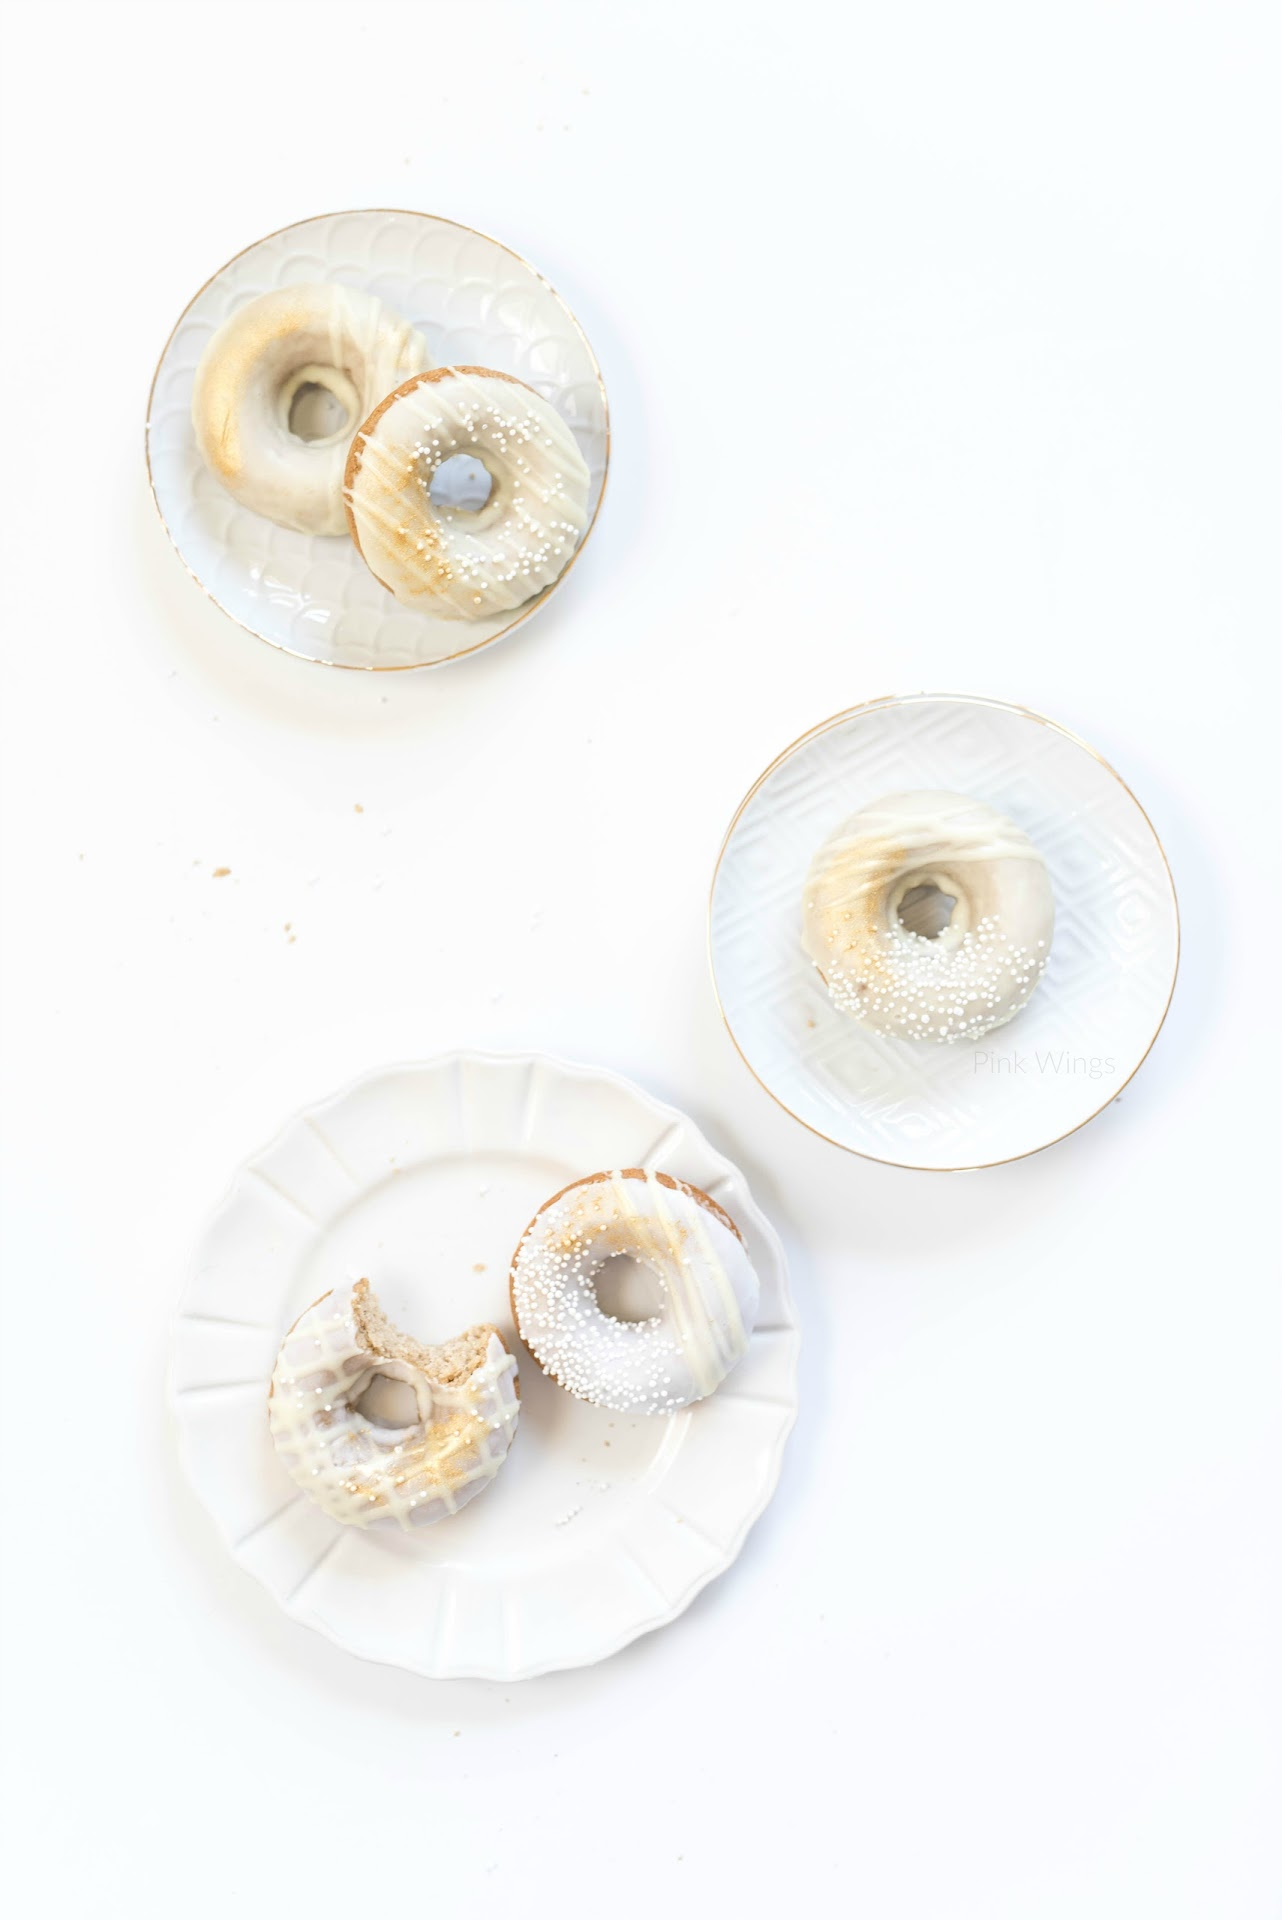 baked doughnuts, cake donuts, carrot cake, healthier donuts, best baked donuts, donut icing recipe, pan donuts, how to decorate donuts, pretty donuts, wedding donuts, yellow and white desserts, gold desserts